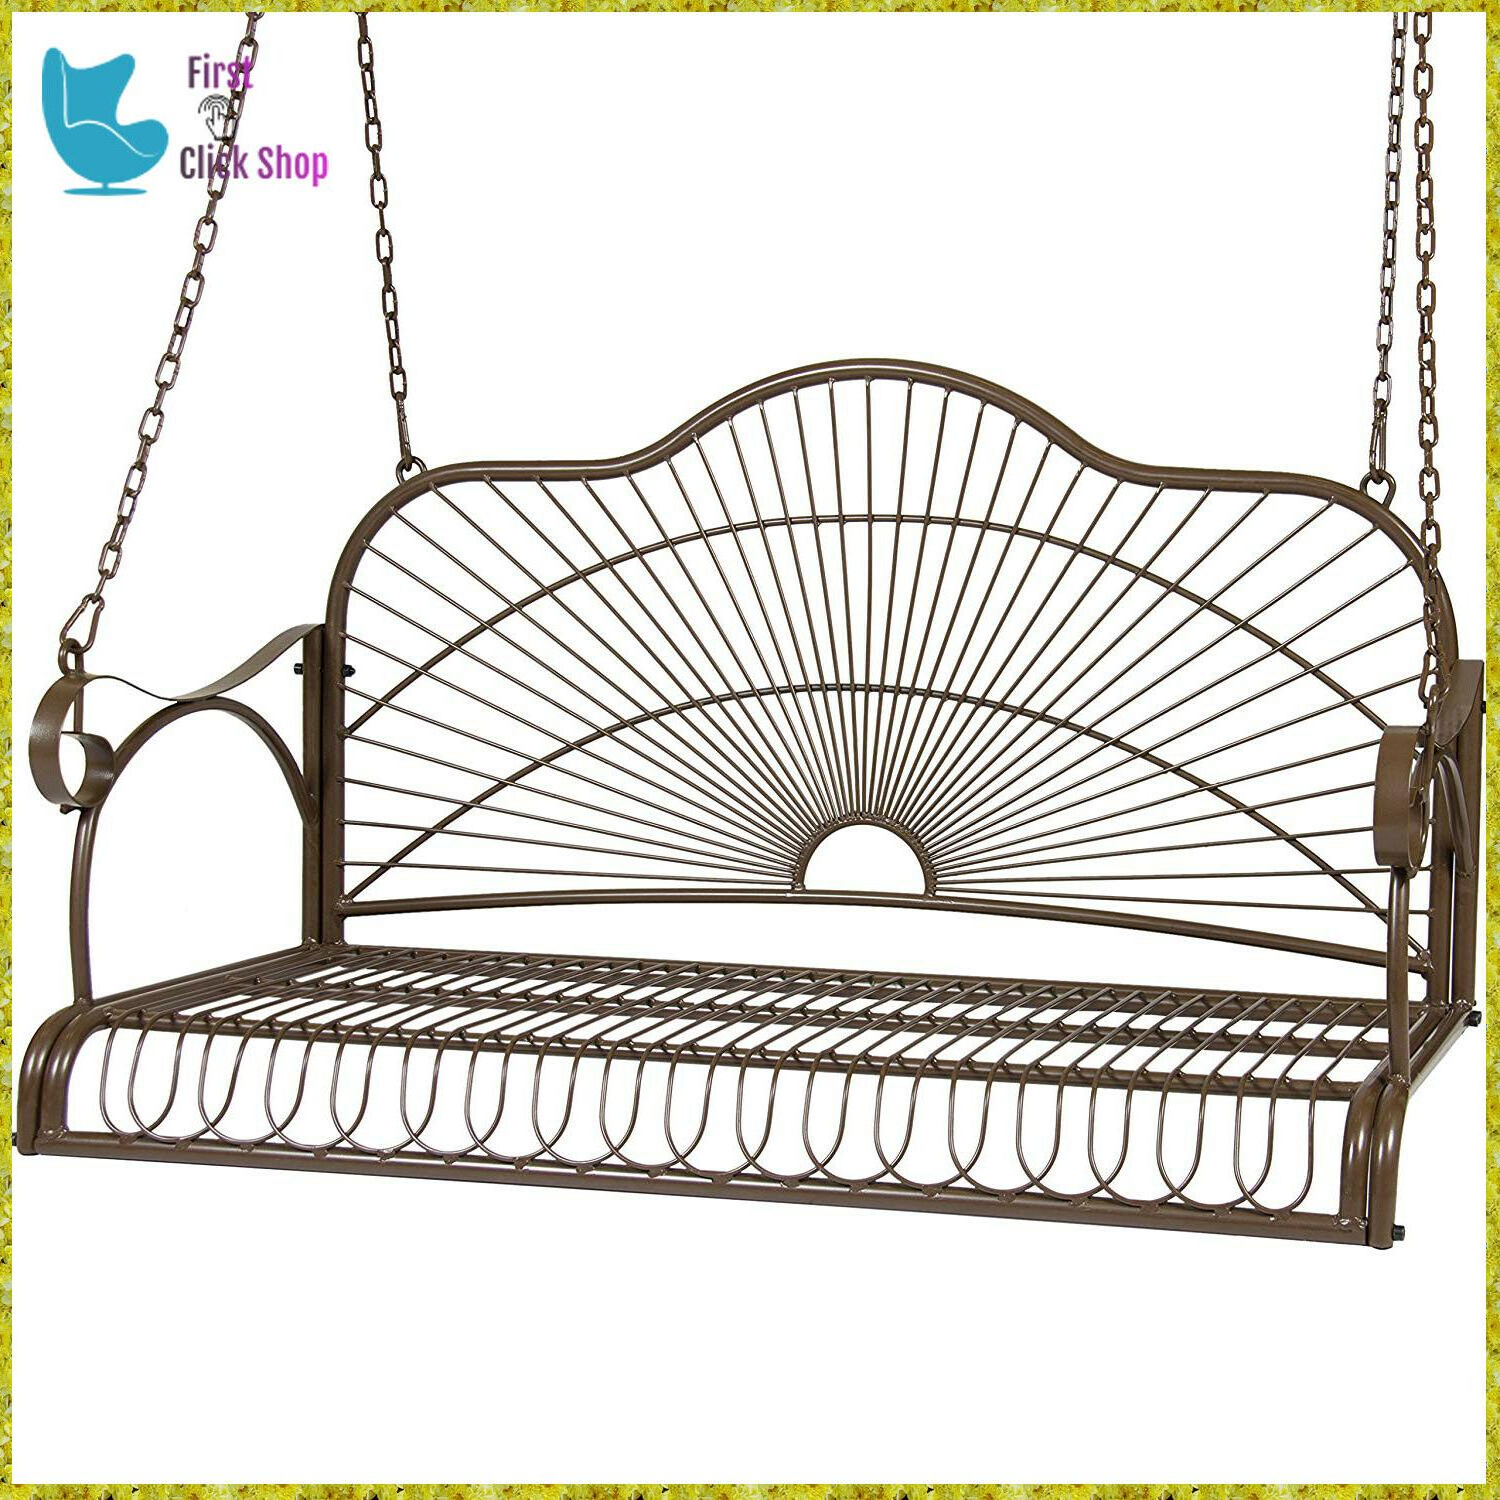 Most Recent Patio Hanging Porch Swings In Porch Swing Patio Metal Hanging Seat Furniture Outdoor (View 13 of 25)